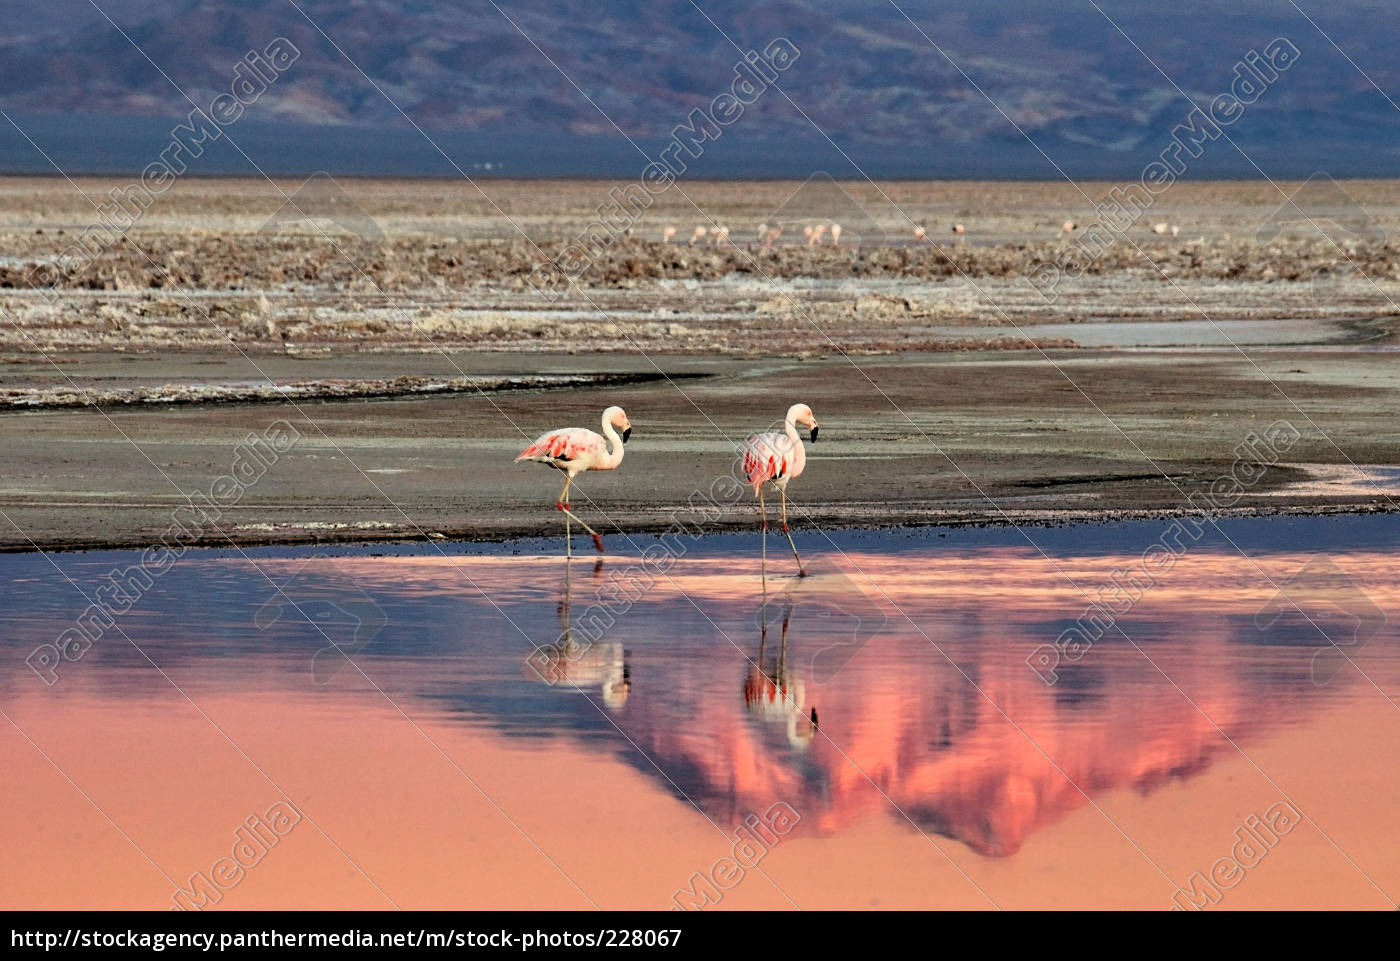 flamingos, am, see - 228067